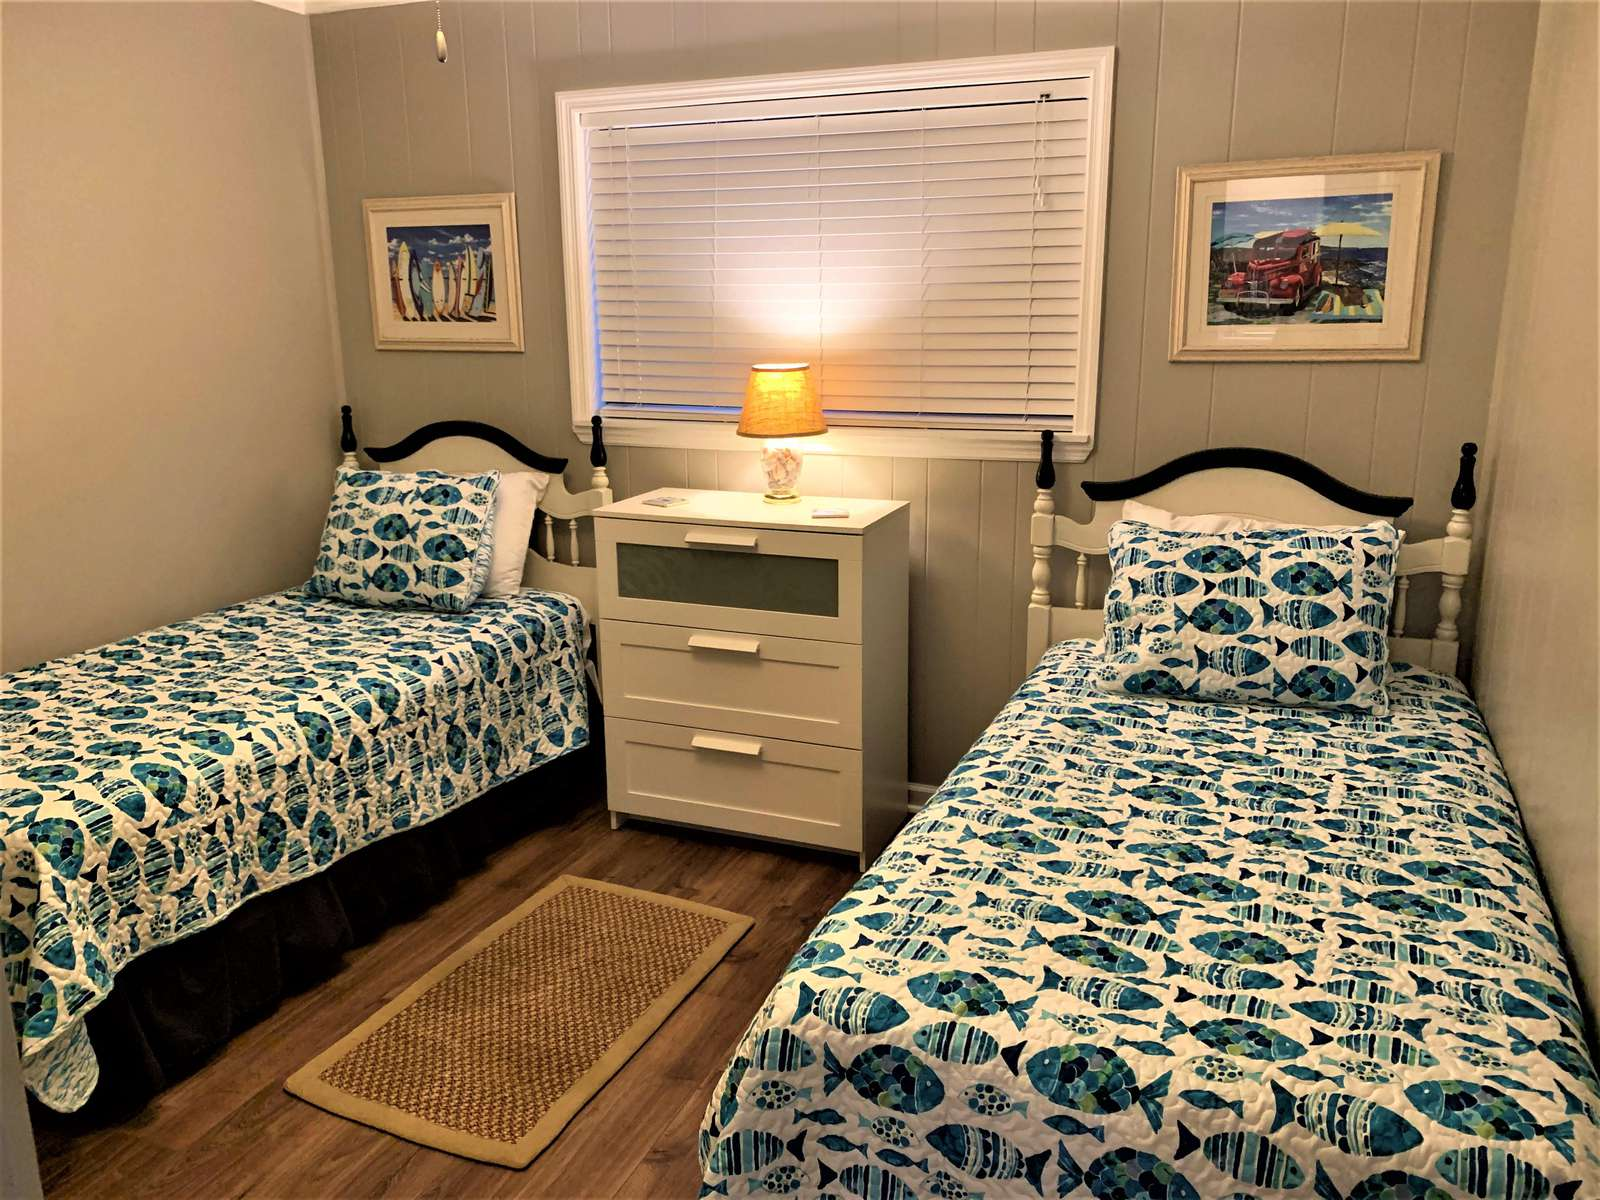 2nd Bedroom with Twins or push together for a couple